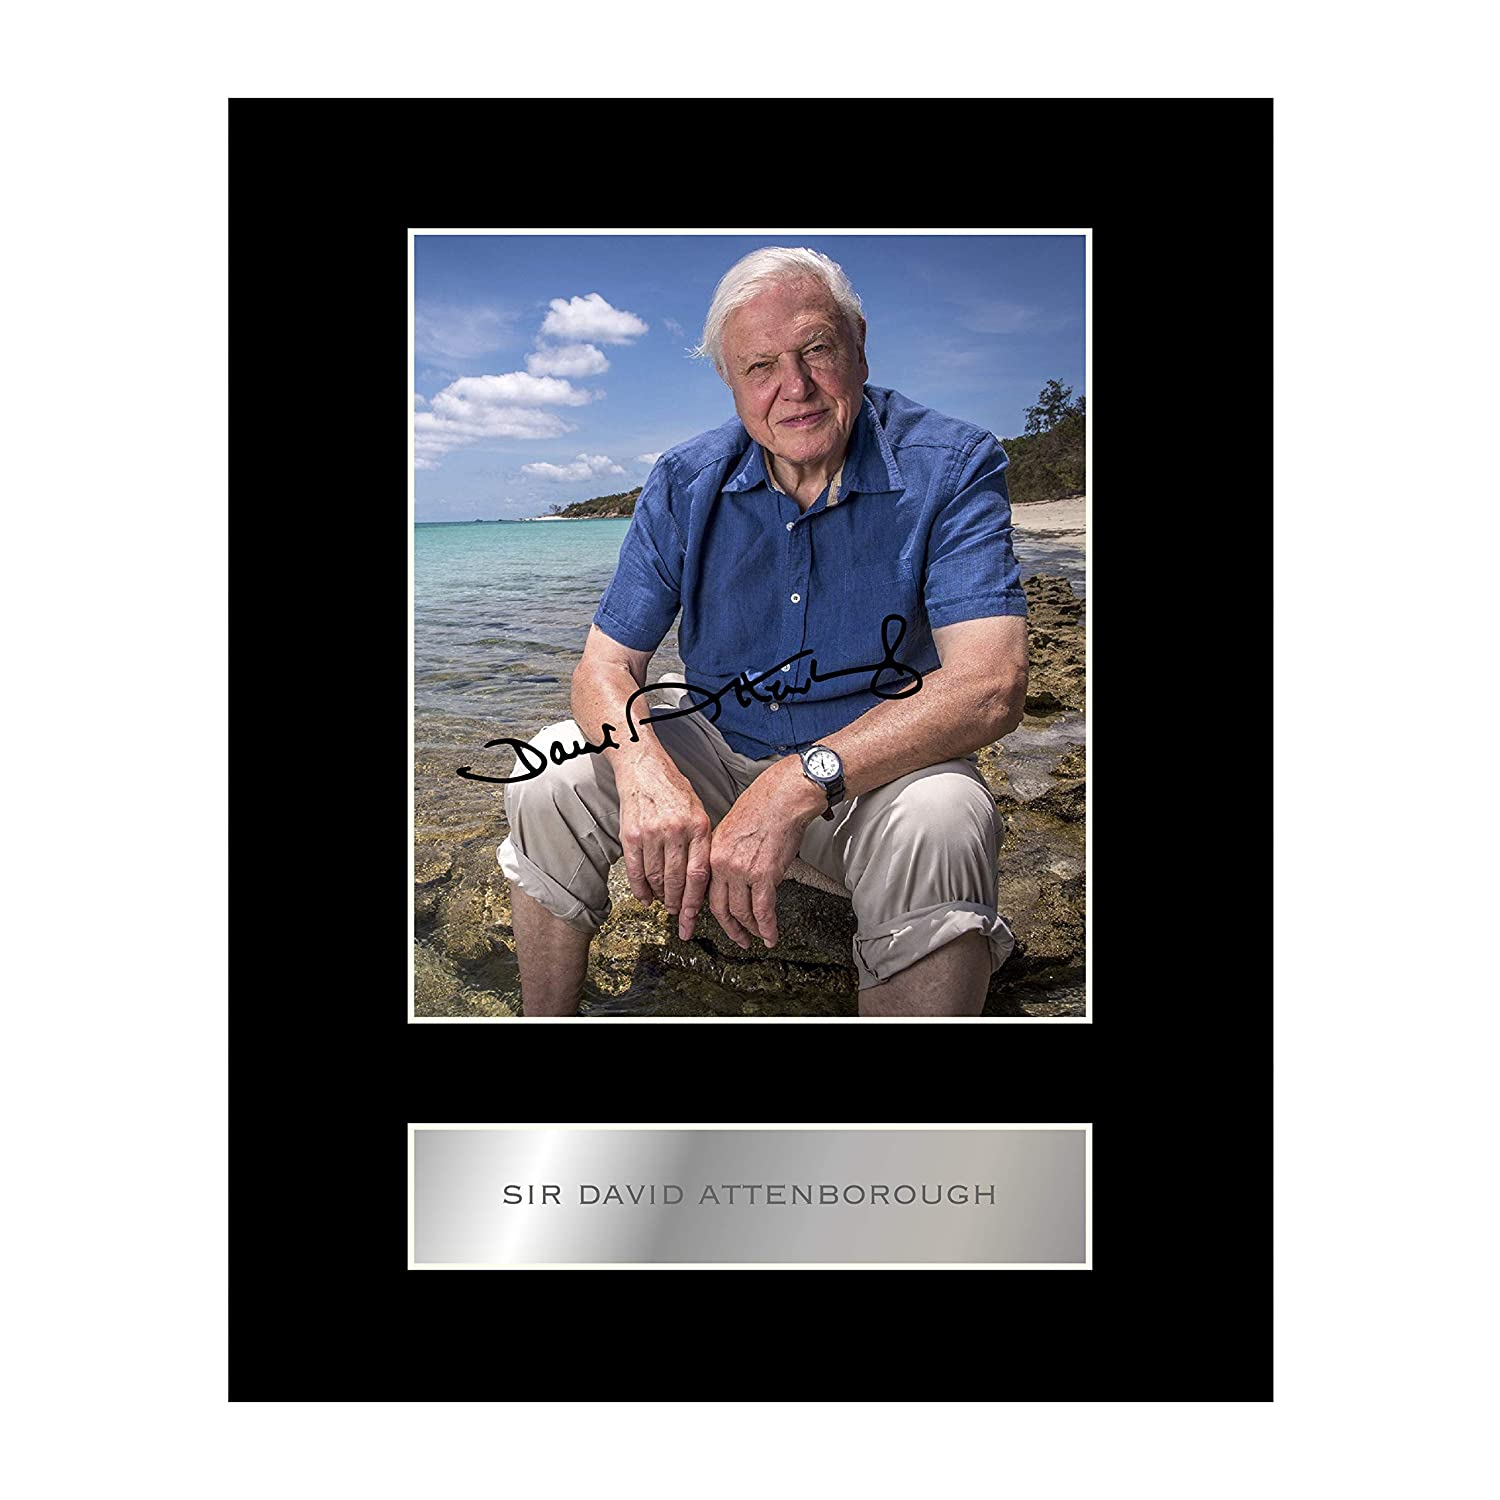 Sir David Attenborough Signed Mounted Photo Display Autographed Gift Picture Print Iconic pics